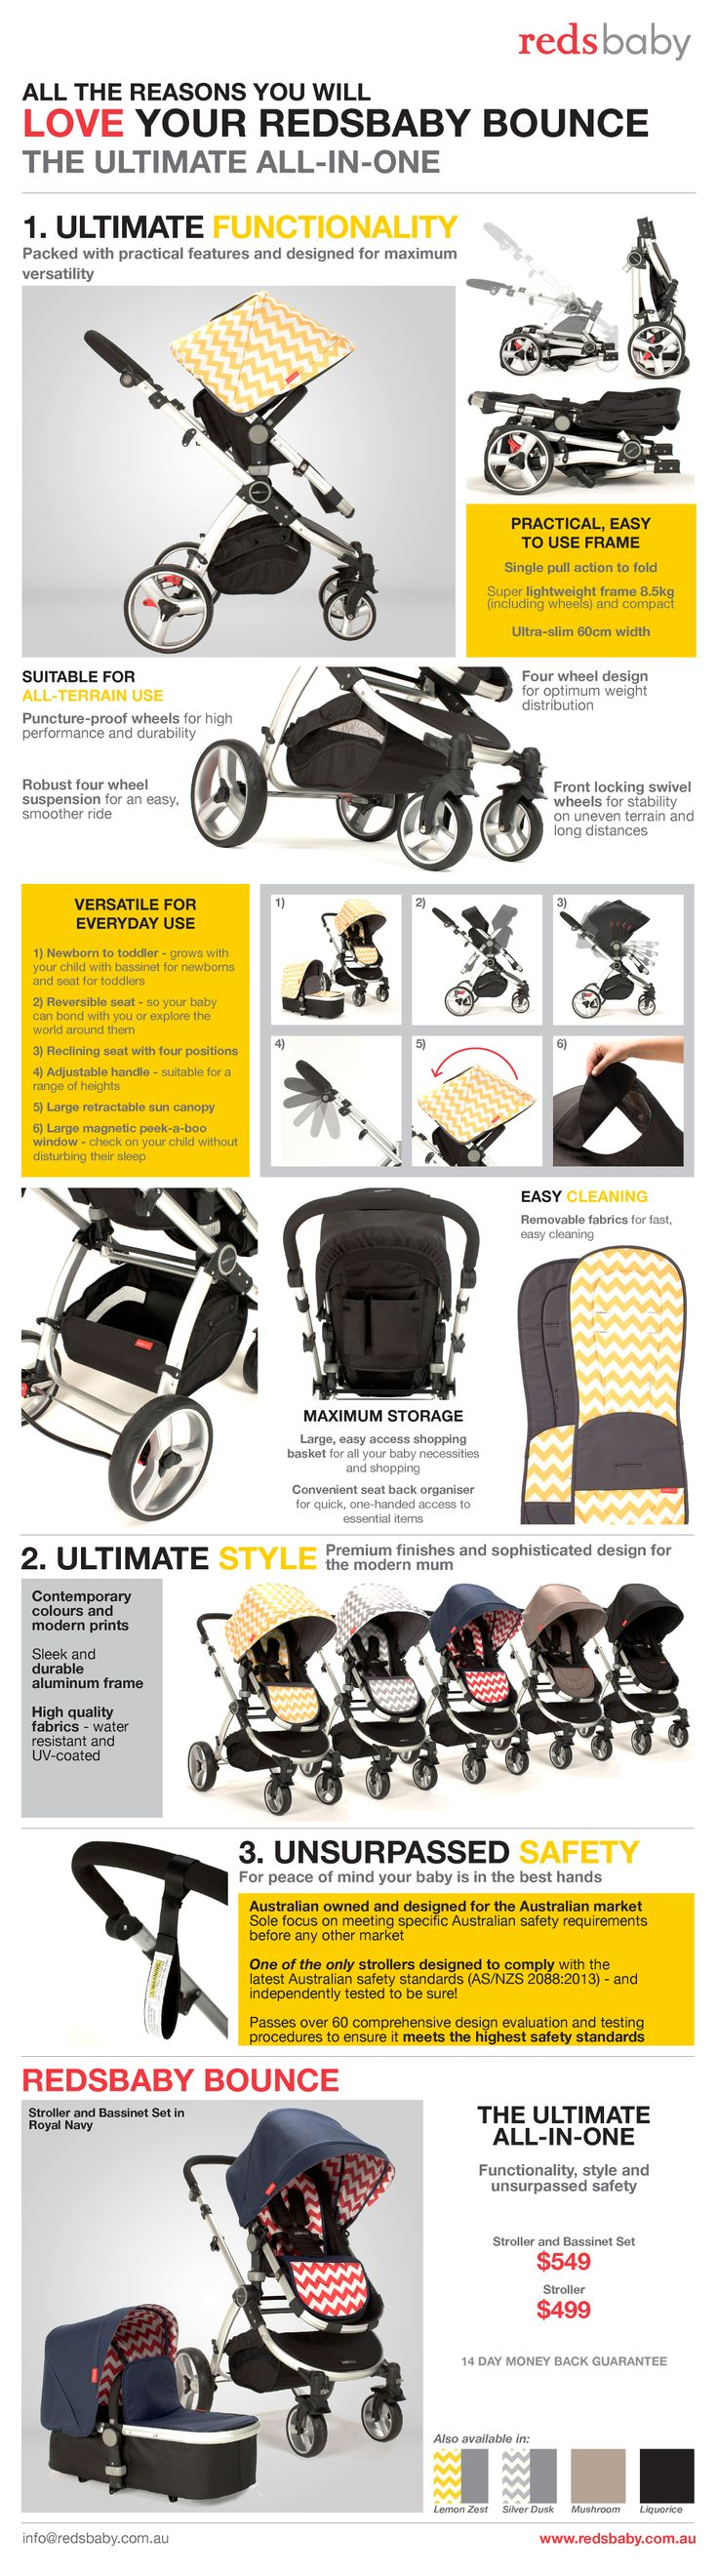 Redsbaby Bounce - The Ultimate All-In-One Stroller/ Pram www.redsbaby.com.au